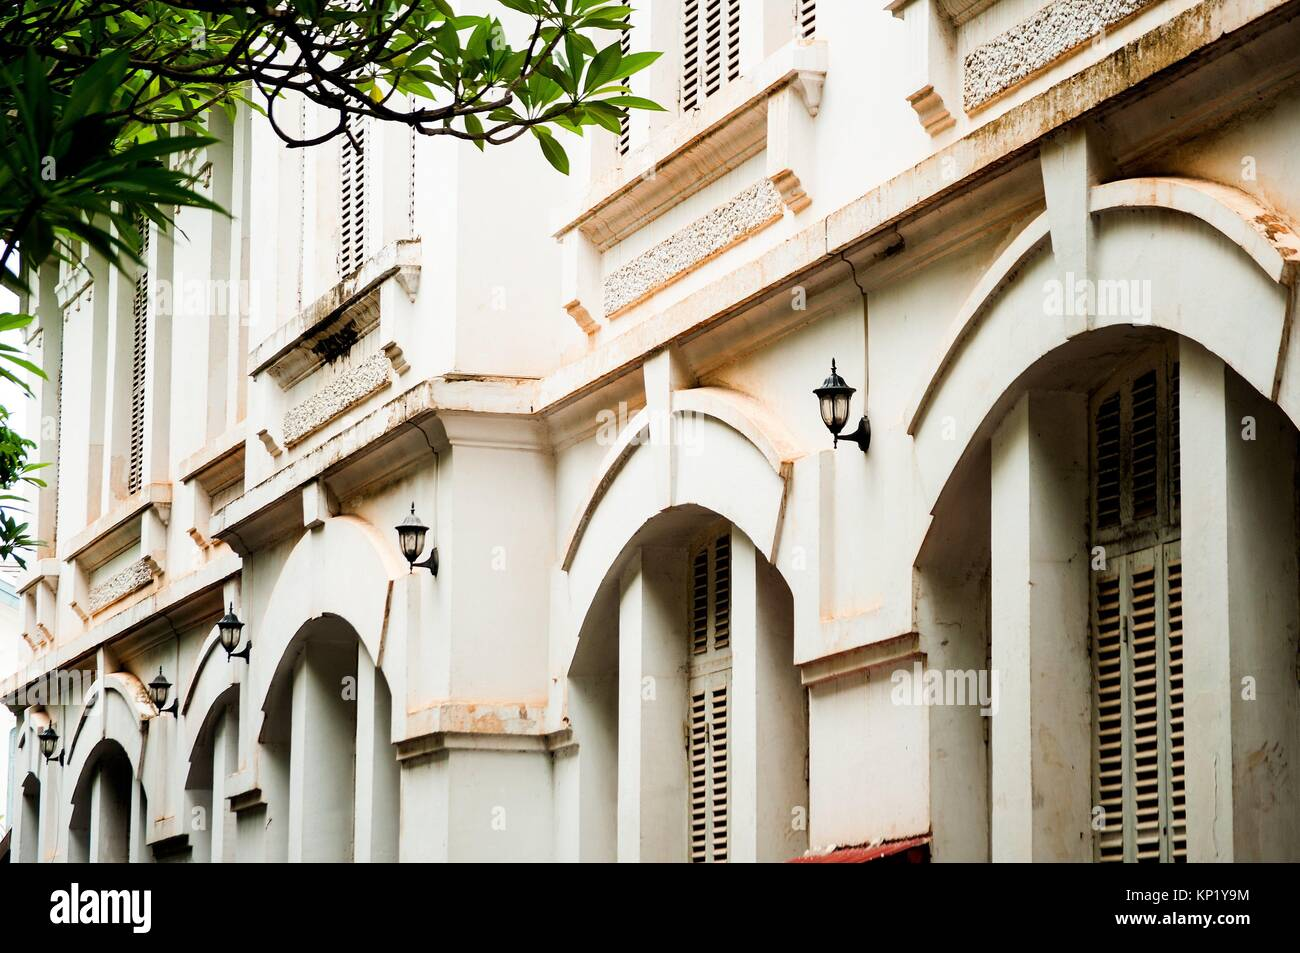 Laos French Colonial Architecture Stock Photos Laos French